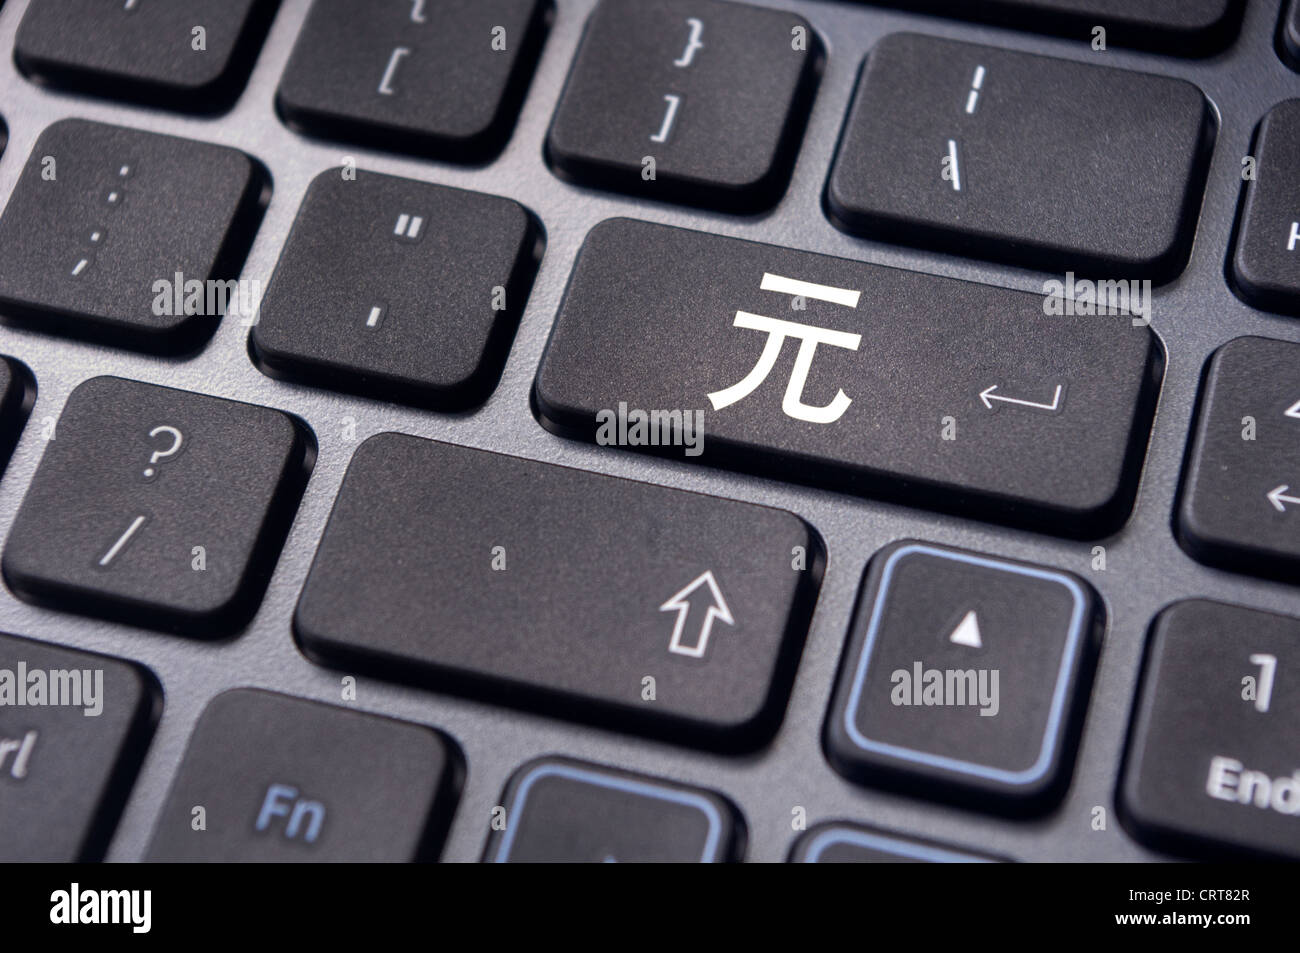 Chinese Yuan Symbol On Keyboard To Convey Forex Trading Or Online